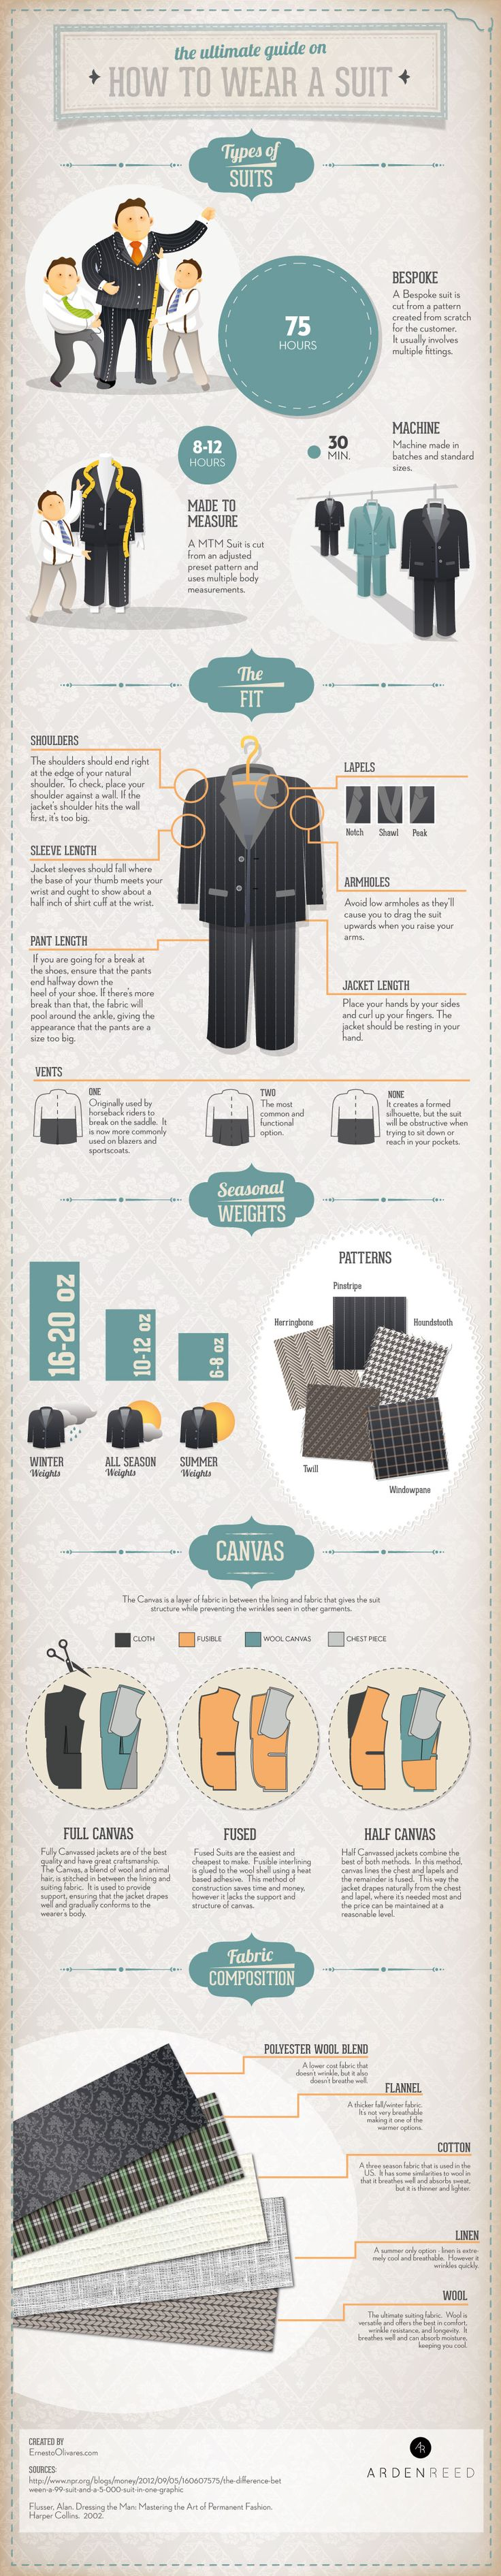 The Ultimate Guide on How to Wear a Suit